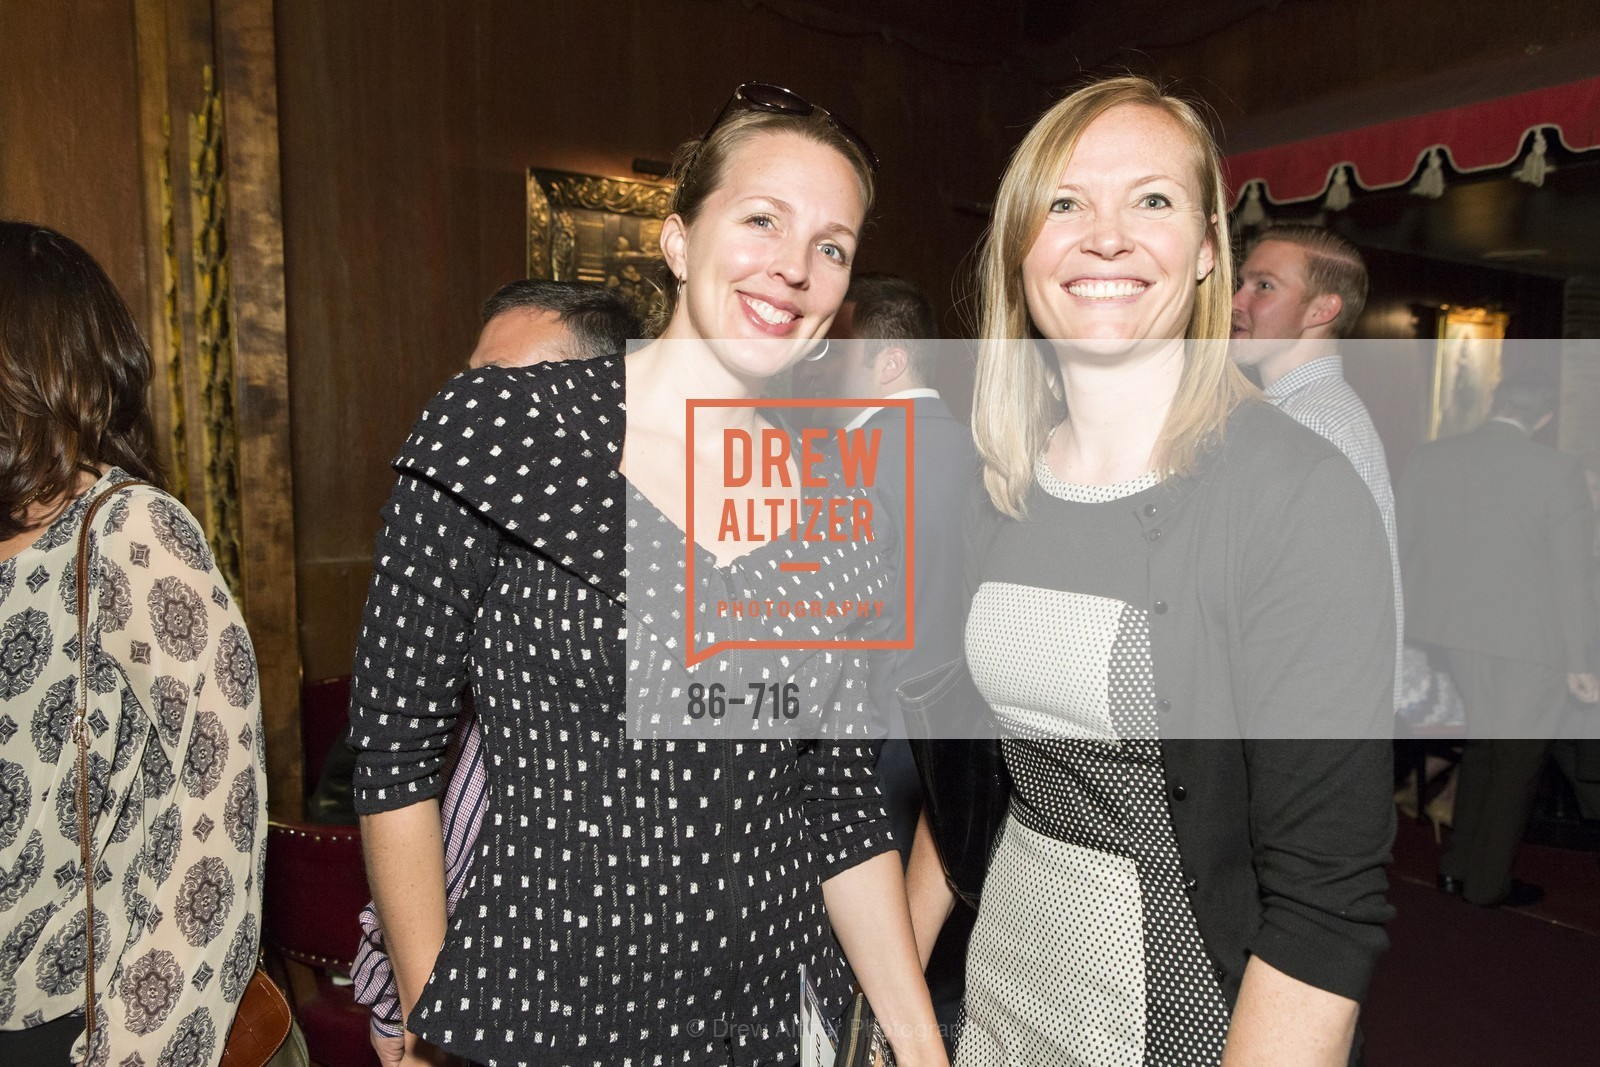 Jennifer Young, Erin Brannan, READING PARTNERS BAY AREA Celebrity Spelling Bee, US, May 9th, 2015,Drew Altizer, Drew Altizer Photography, full-service event agency, private events, San Francisco photographer, photographer California